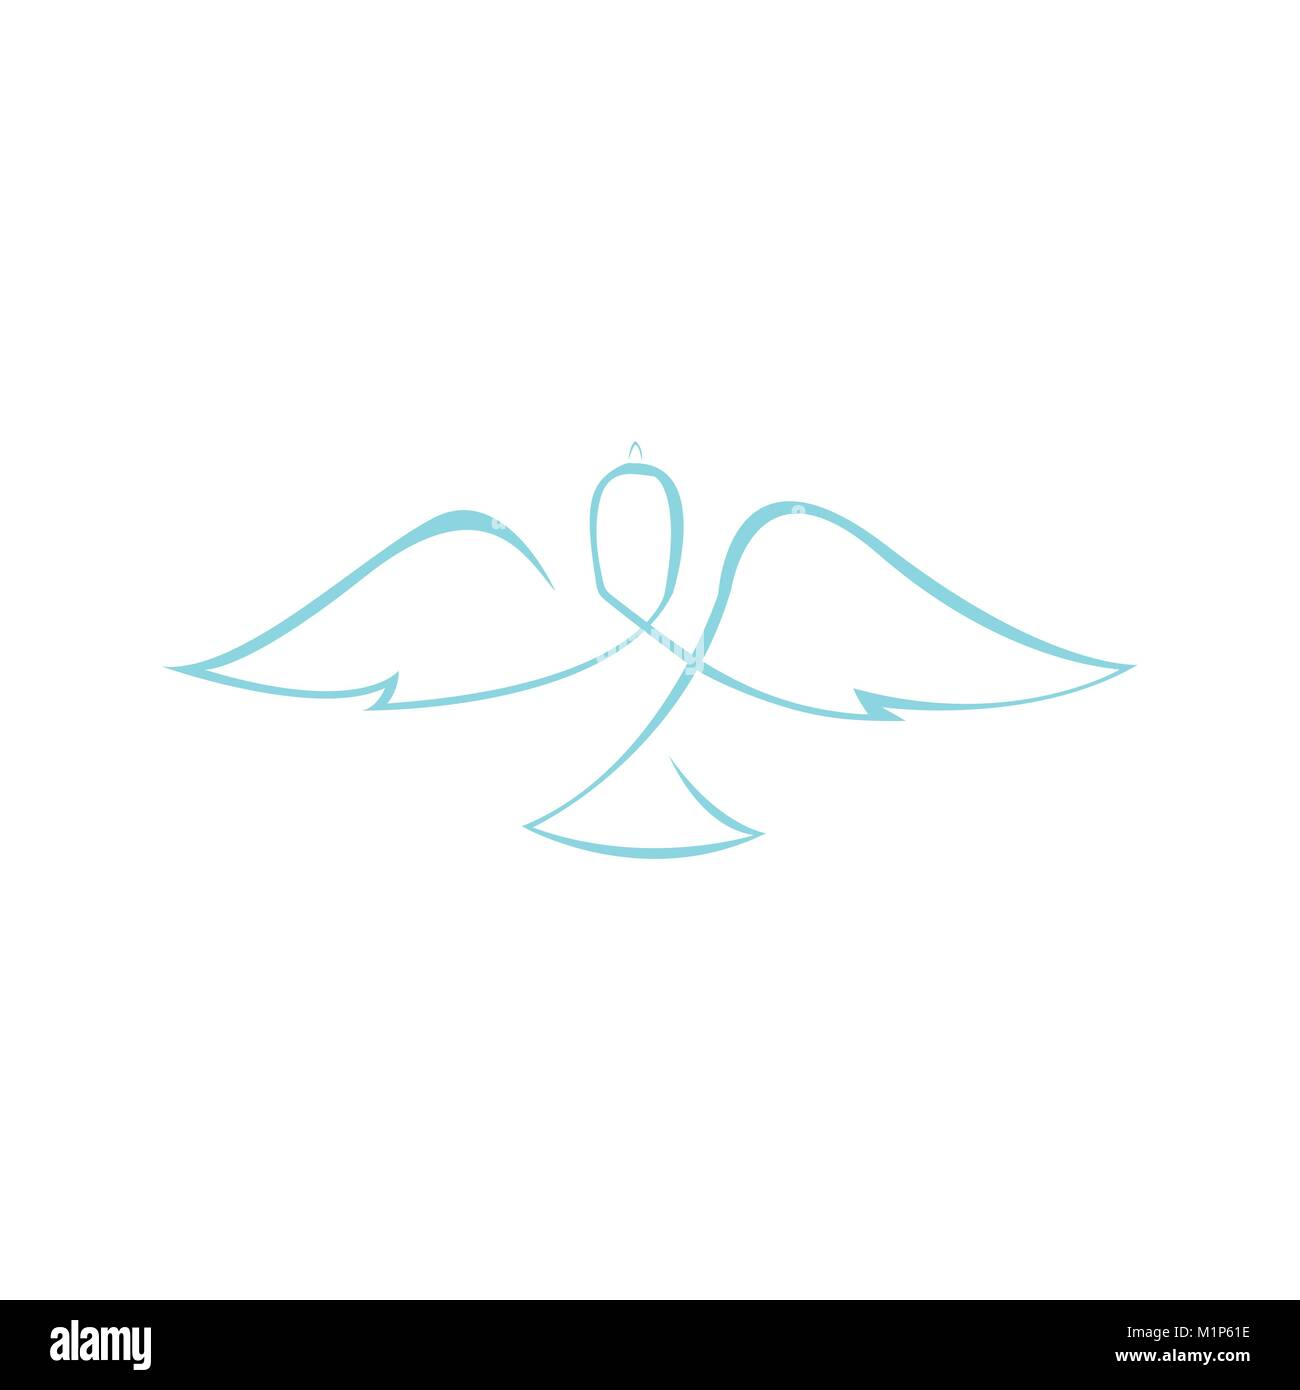 Abstract Dove Wings Line Art Symbol Vector Illustration